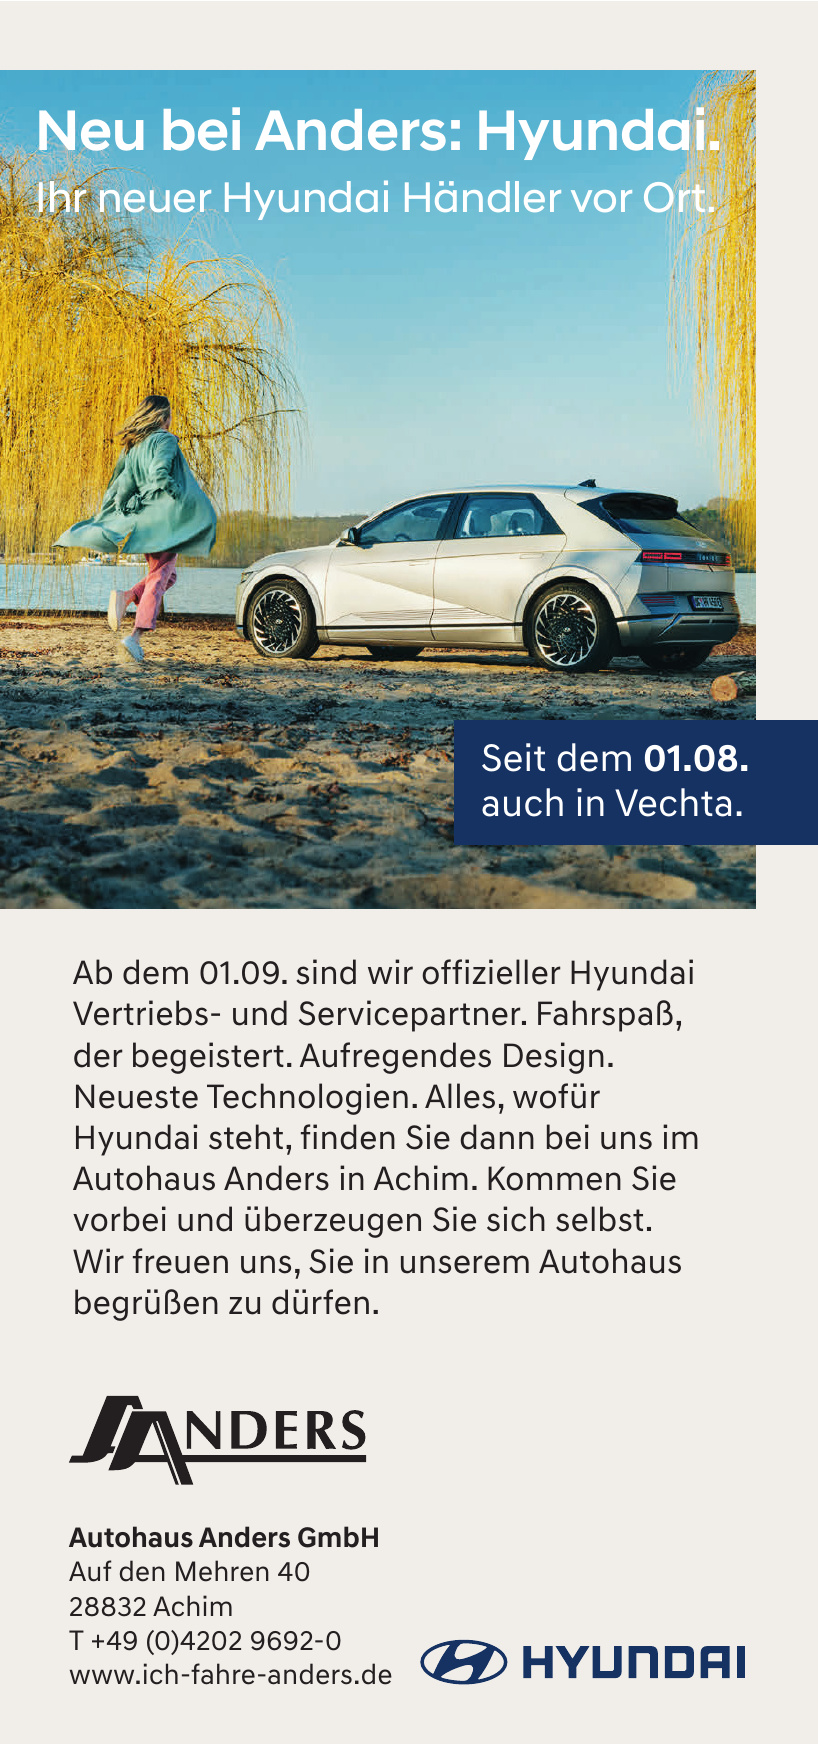 Autohaus Anders GmbH